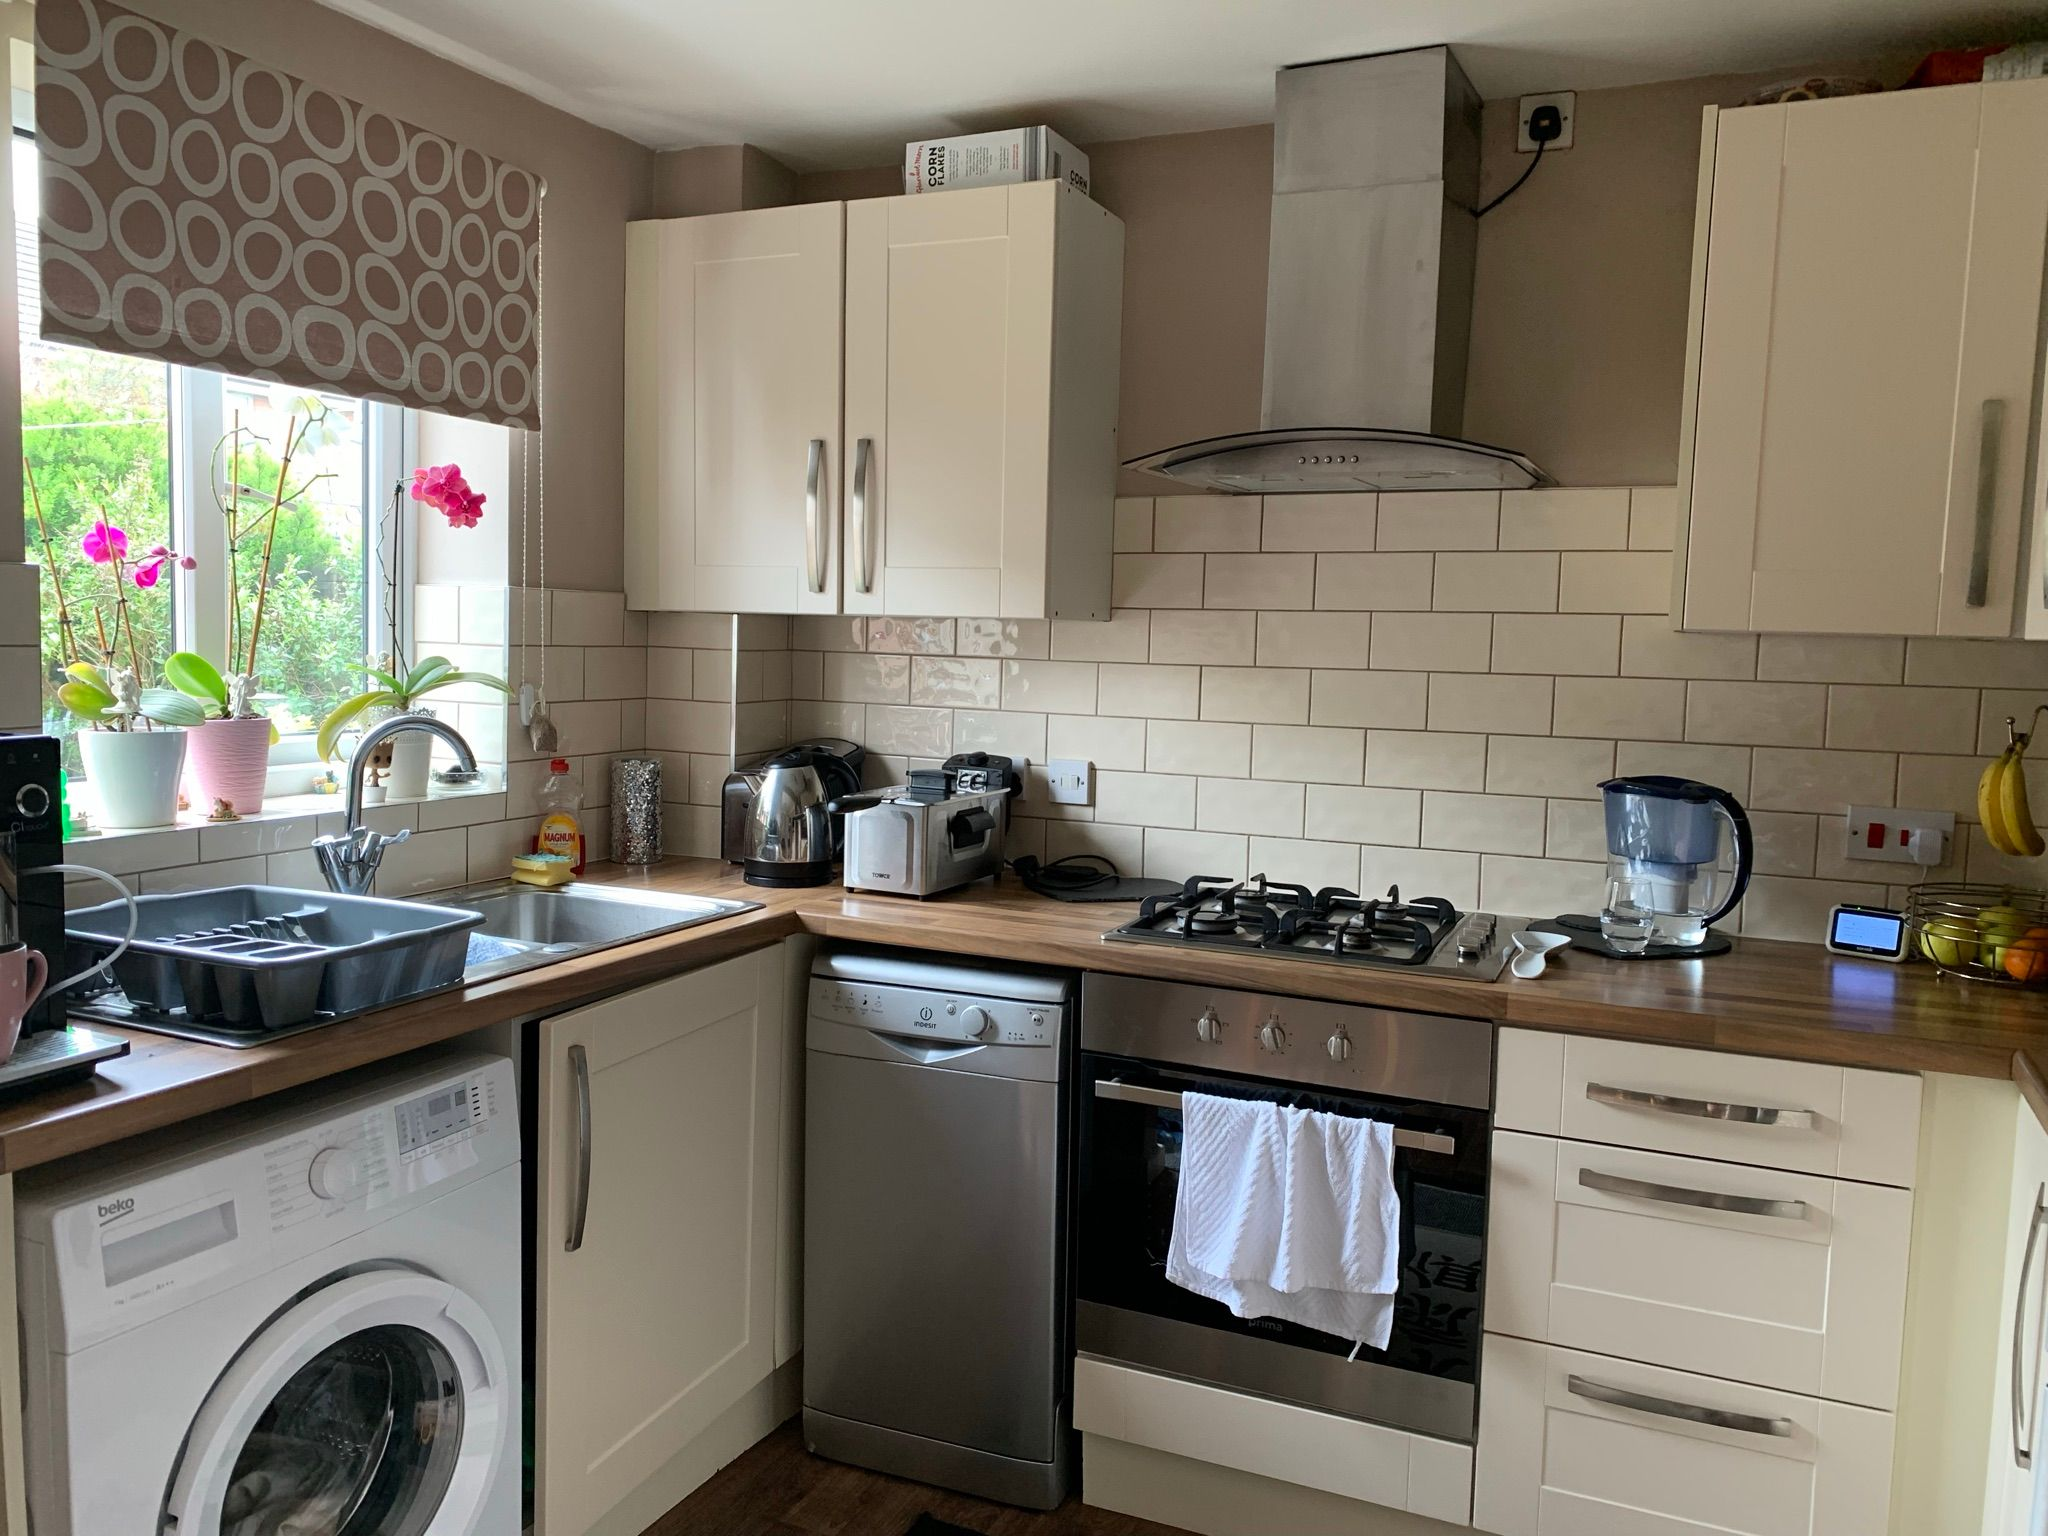 Image 1 of 2 of Kitchen/Diner, on Accommodation Comprising for .